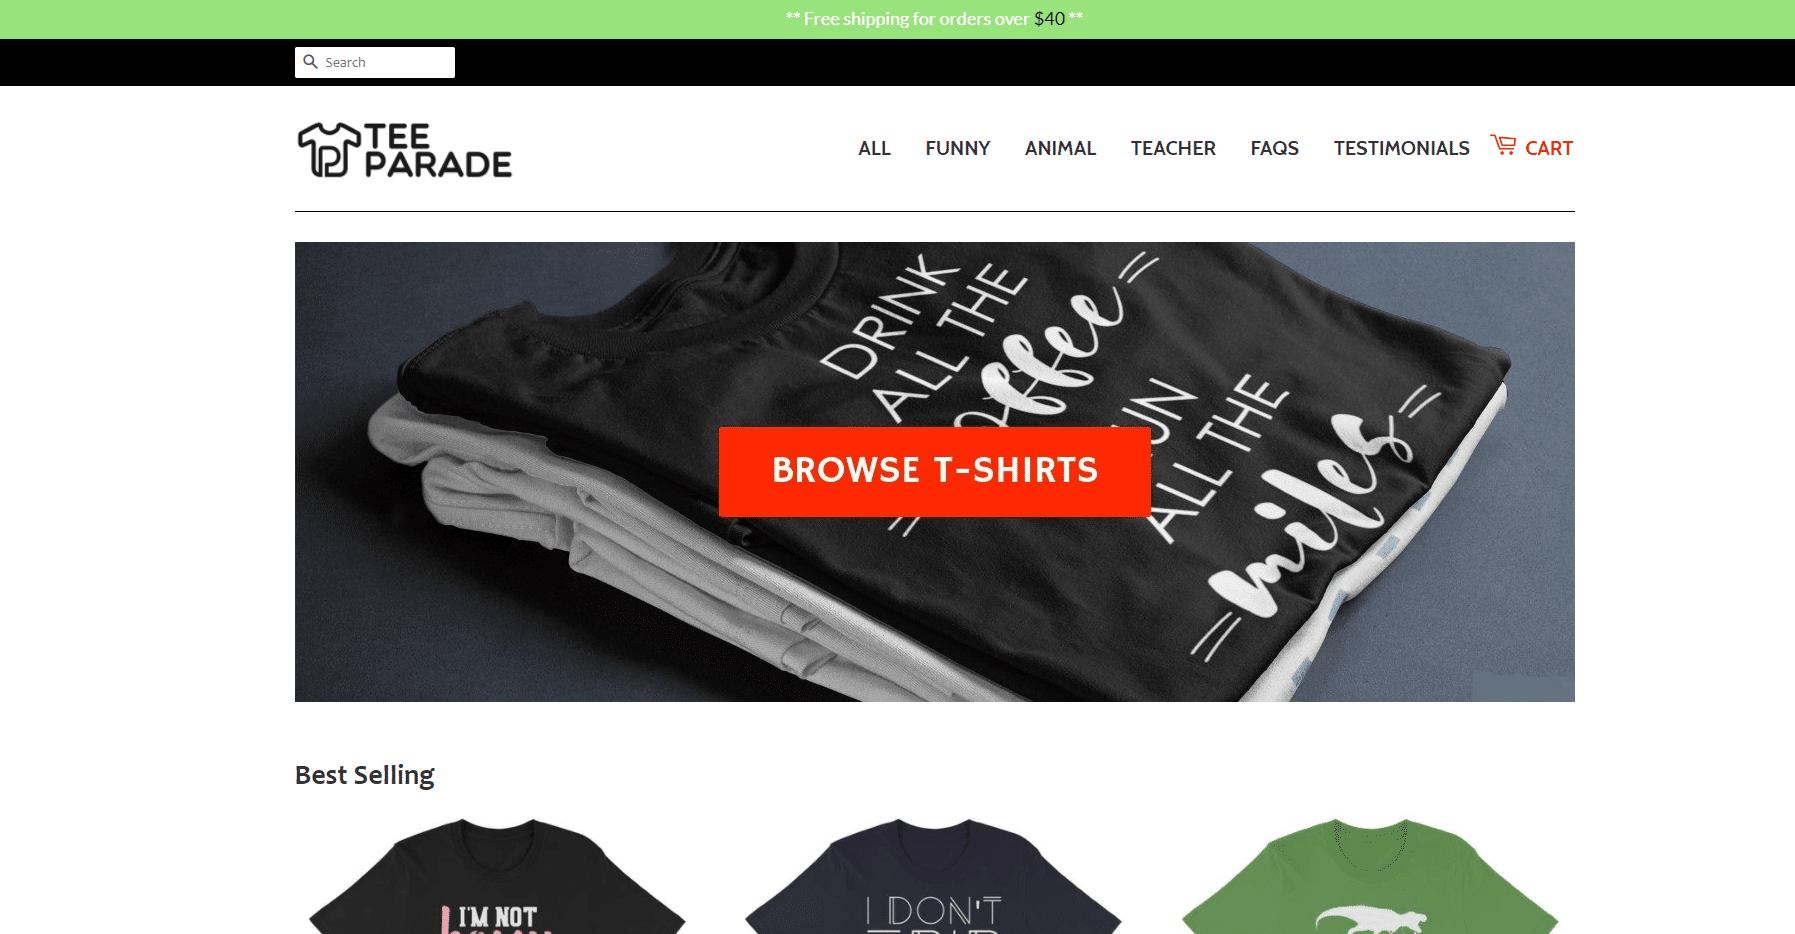 T-shirt business, Web site